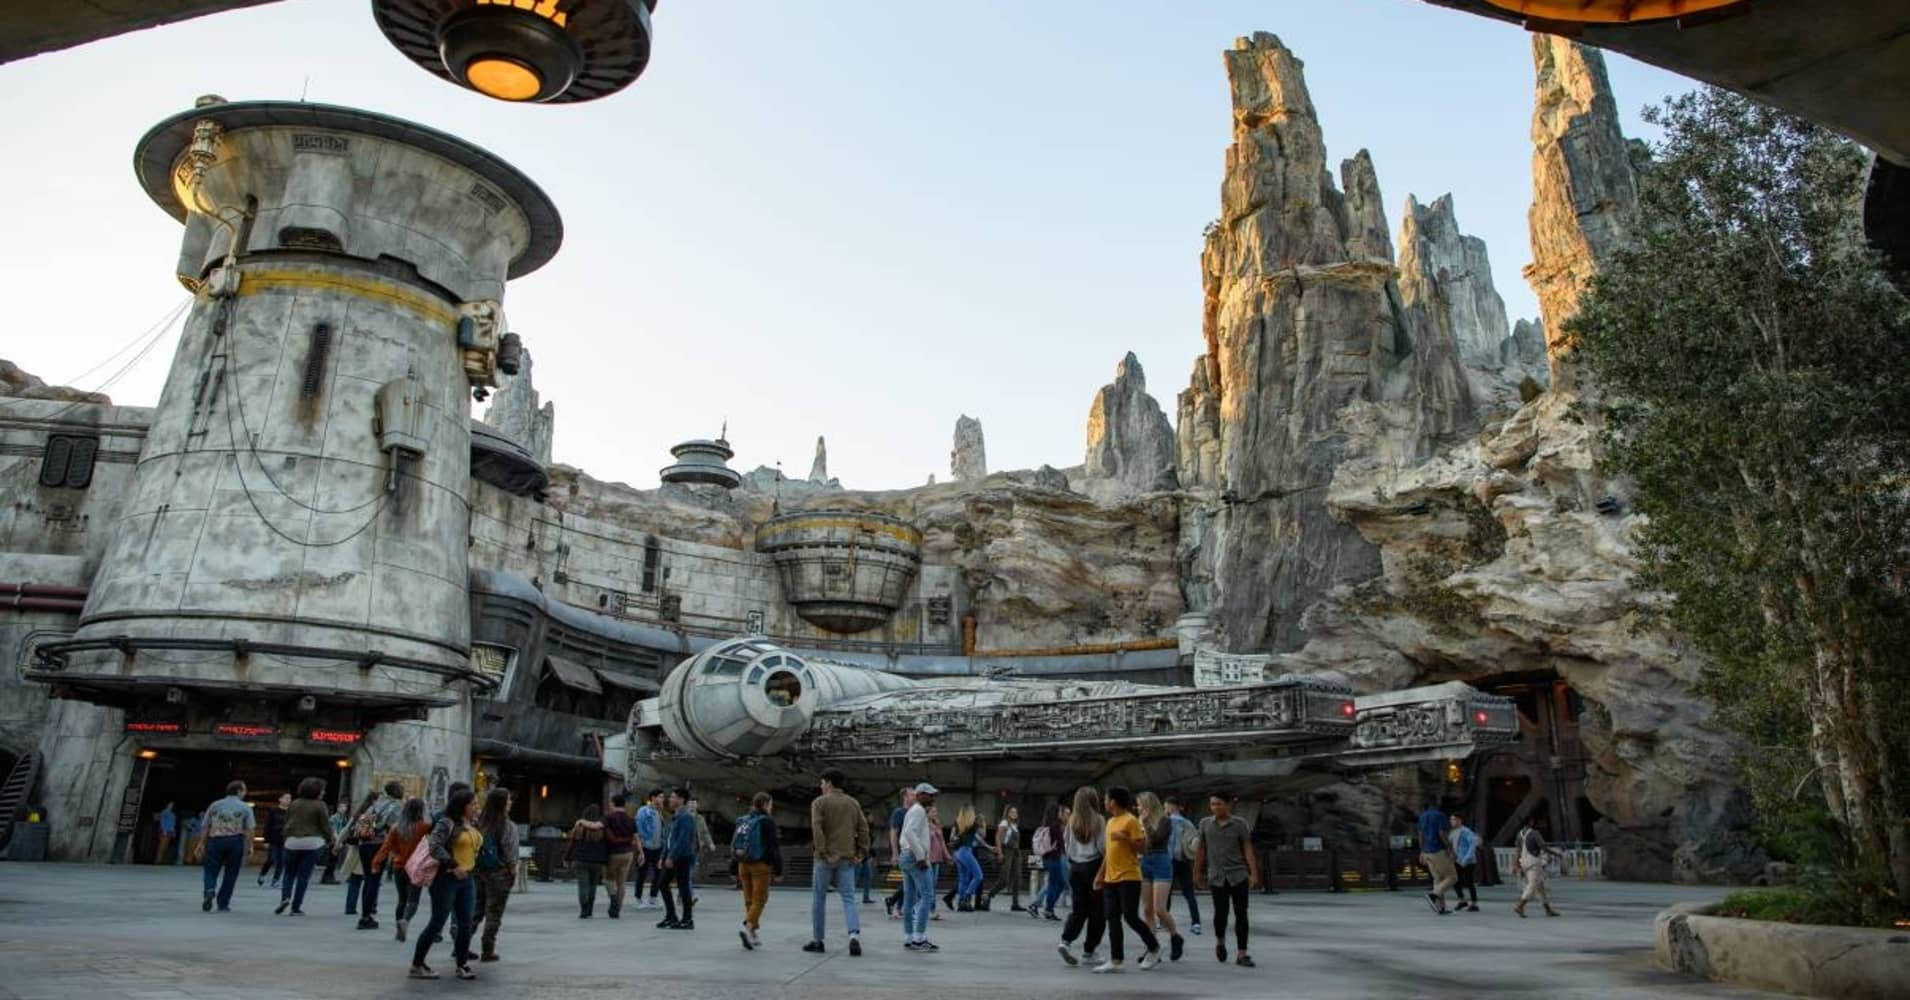 Here's an inside look at Disney's new Star Wars theme park — Galaxy's Edge